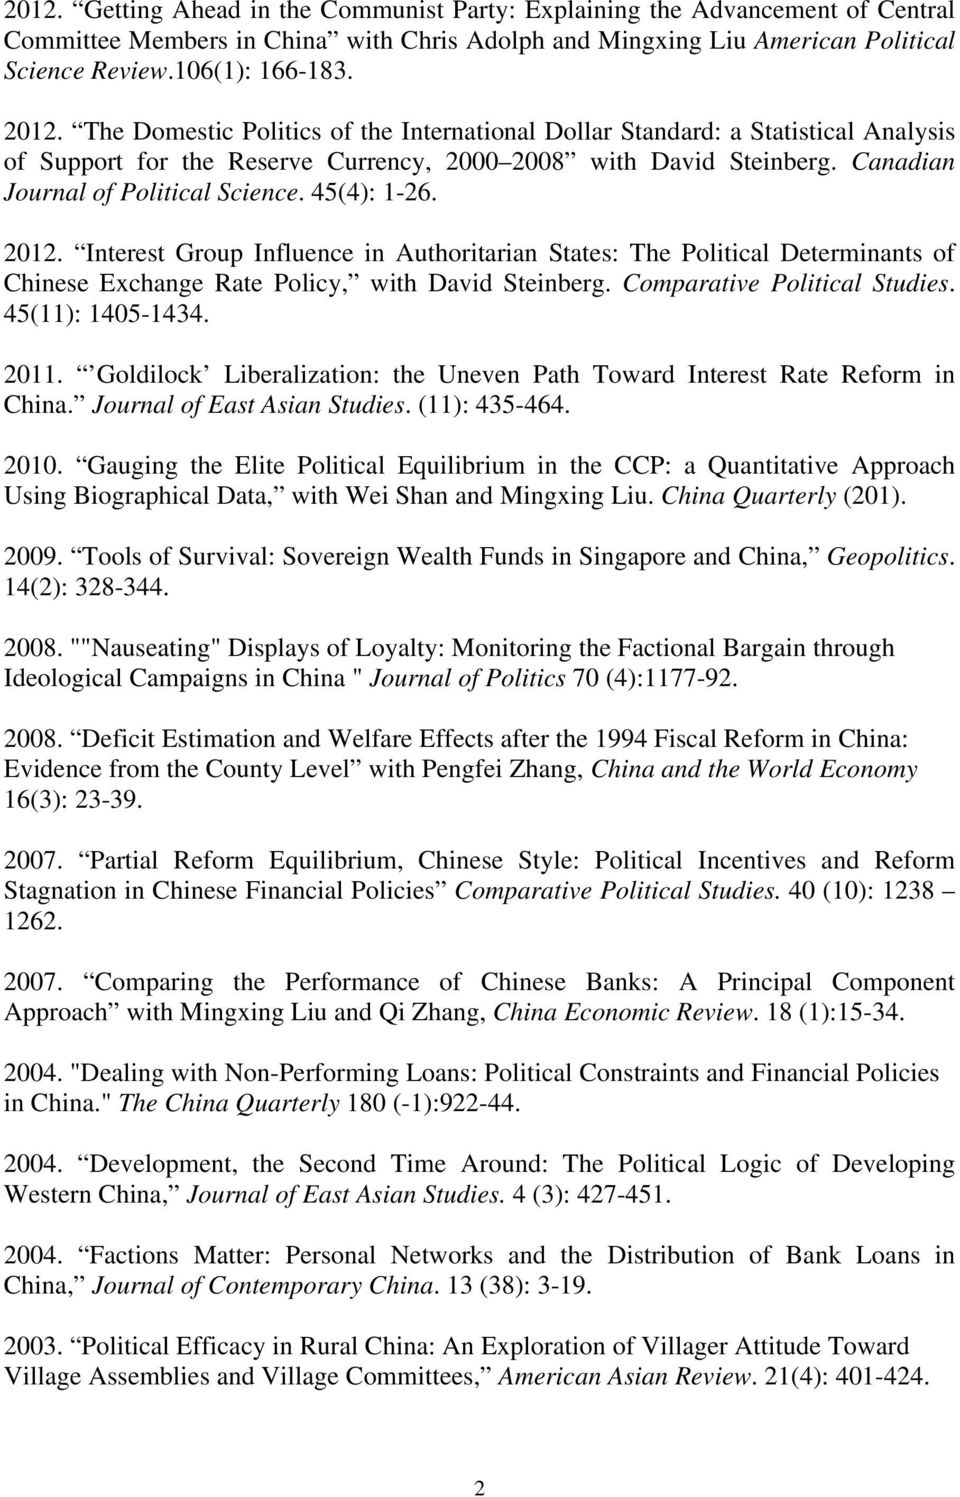 45(4): 1-26. 2012. Interest Group Influence in Authoritarian States: The Political Determinants of Chinese Exchange Rate Policy, with David Steinberg. Comparative Political Studies. 45(11): 1405-1434.